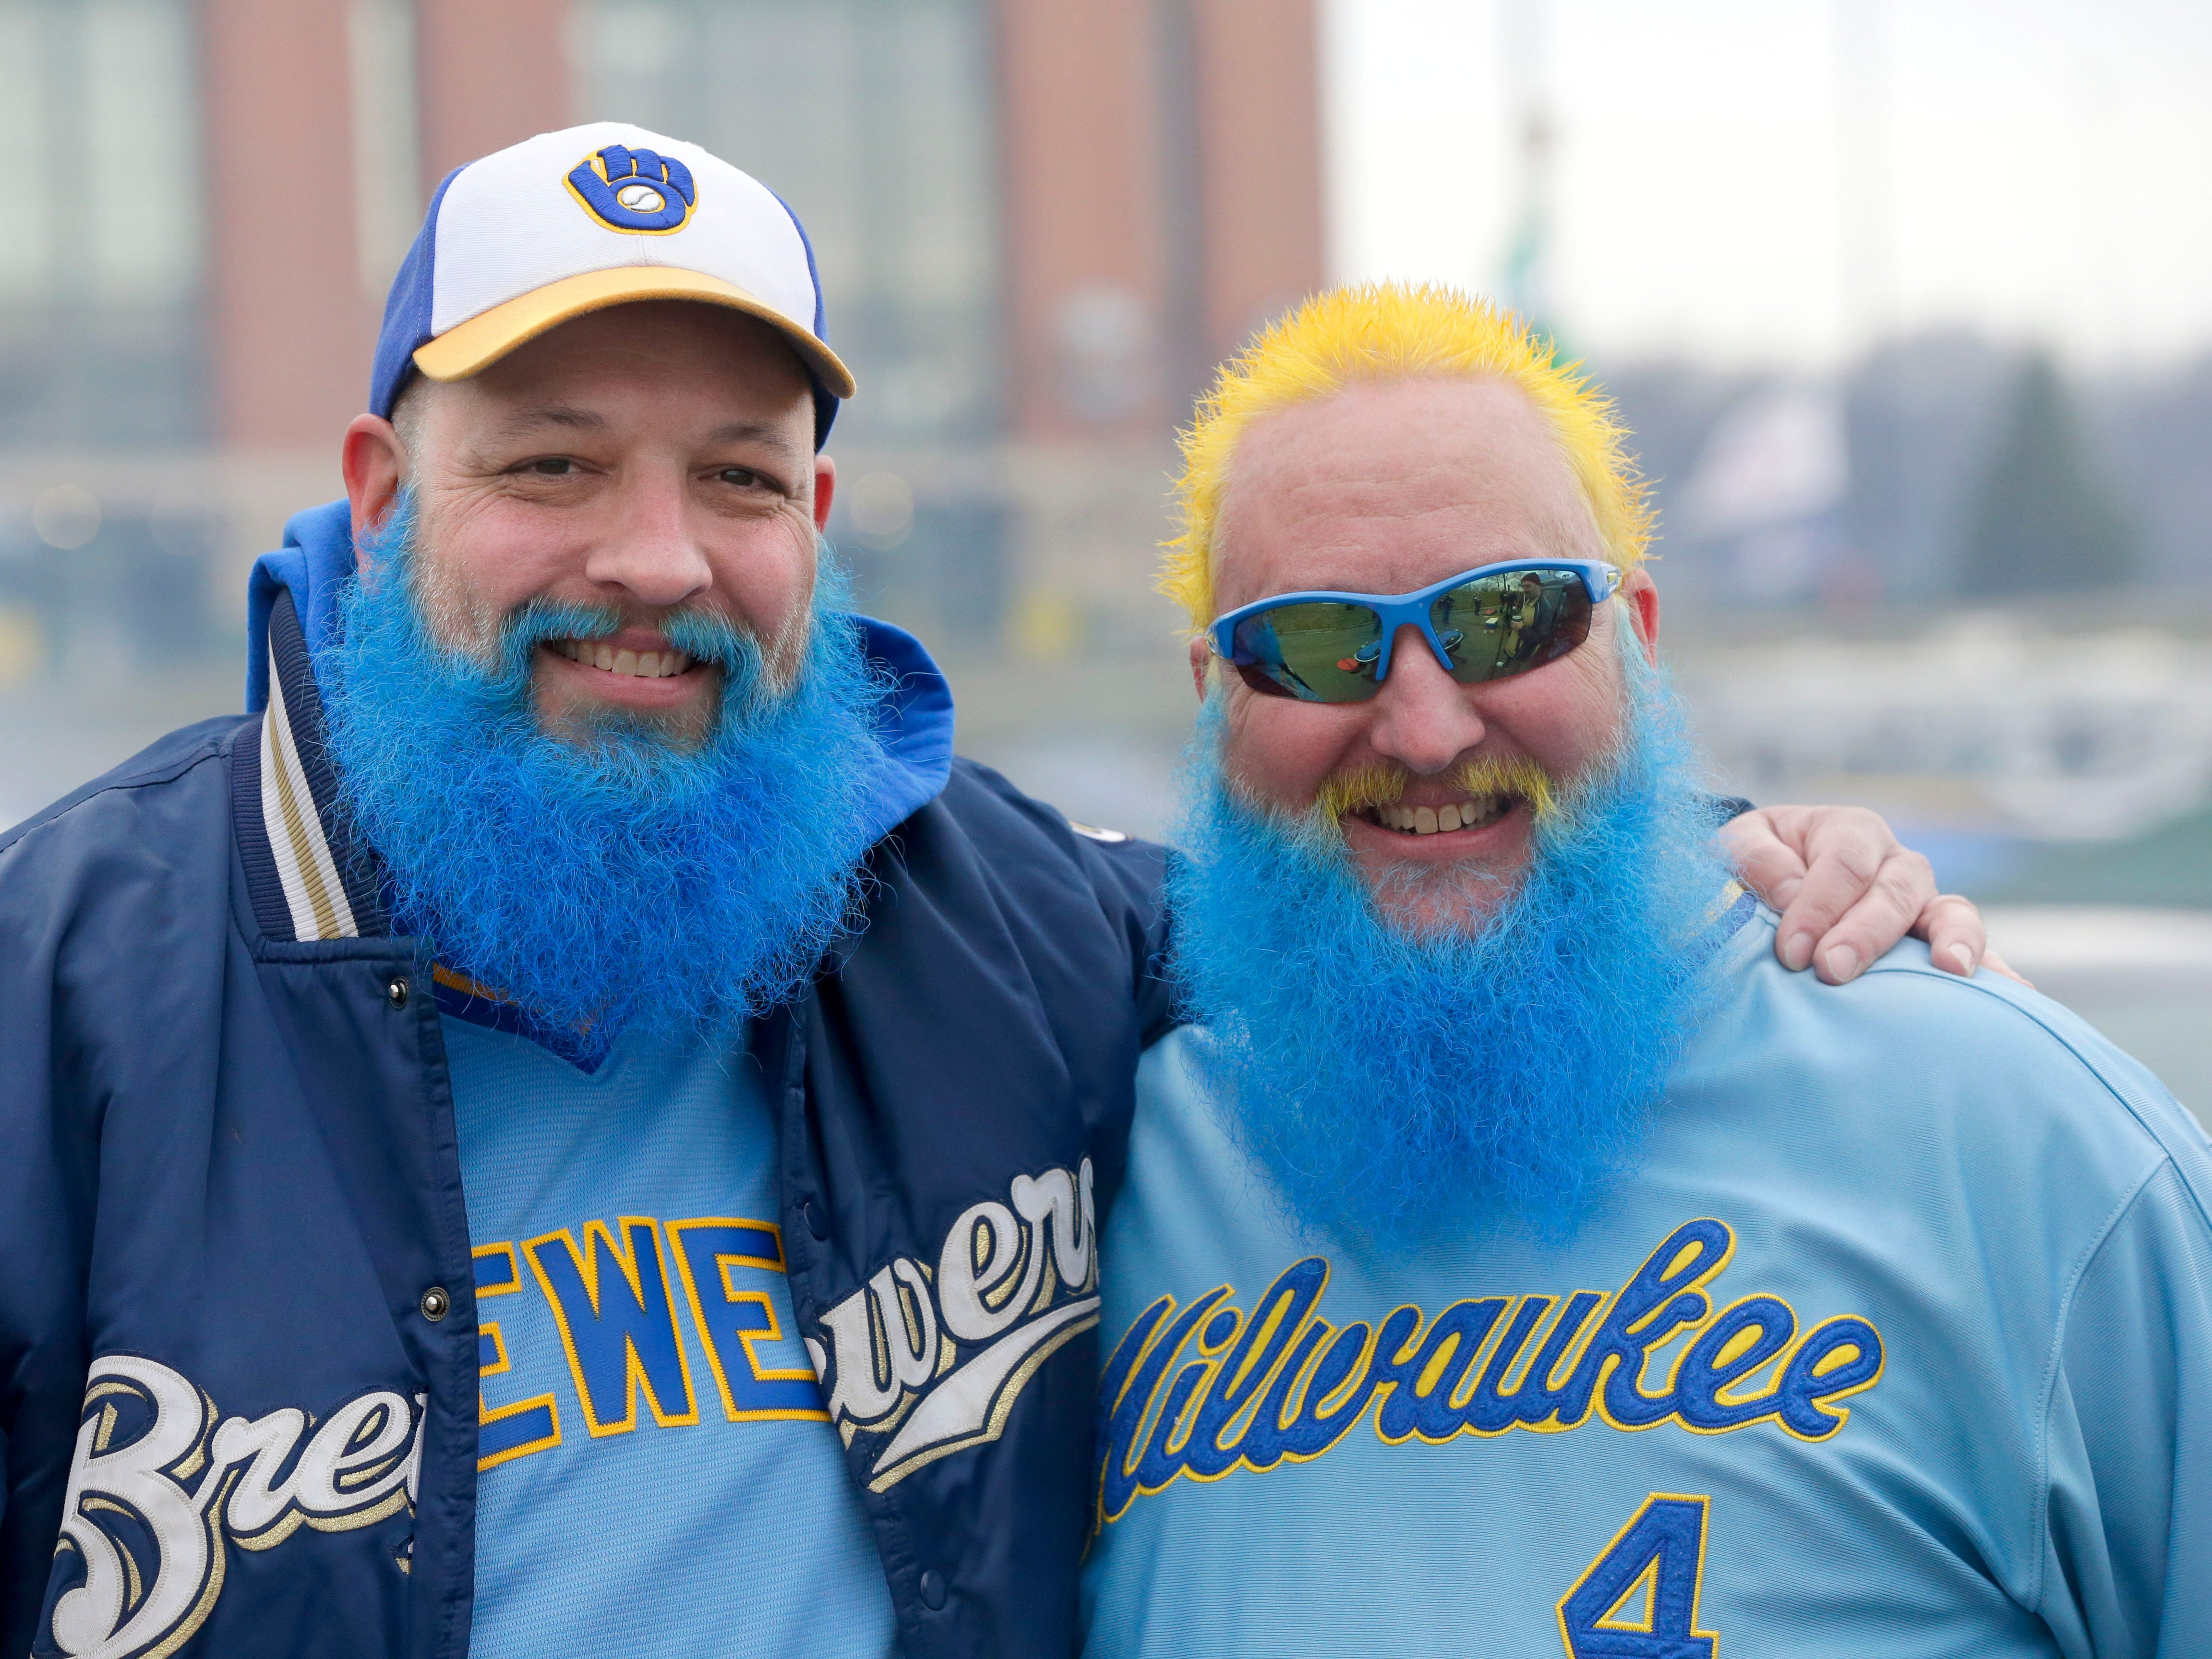 Brothers Brian Haagensen (left) and Todd Haagensen, both of Mount Pleasant, colored their beards Brewers blue in preparation for opening-day tailgating at Miller Park on April 3, 2017. Inside Miller Park, Milwaukee lost to the Colorado Rockies, 7-5.